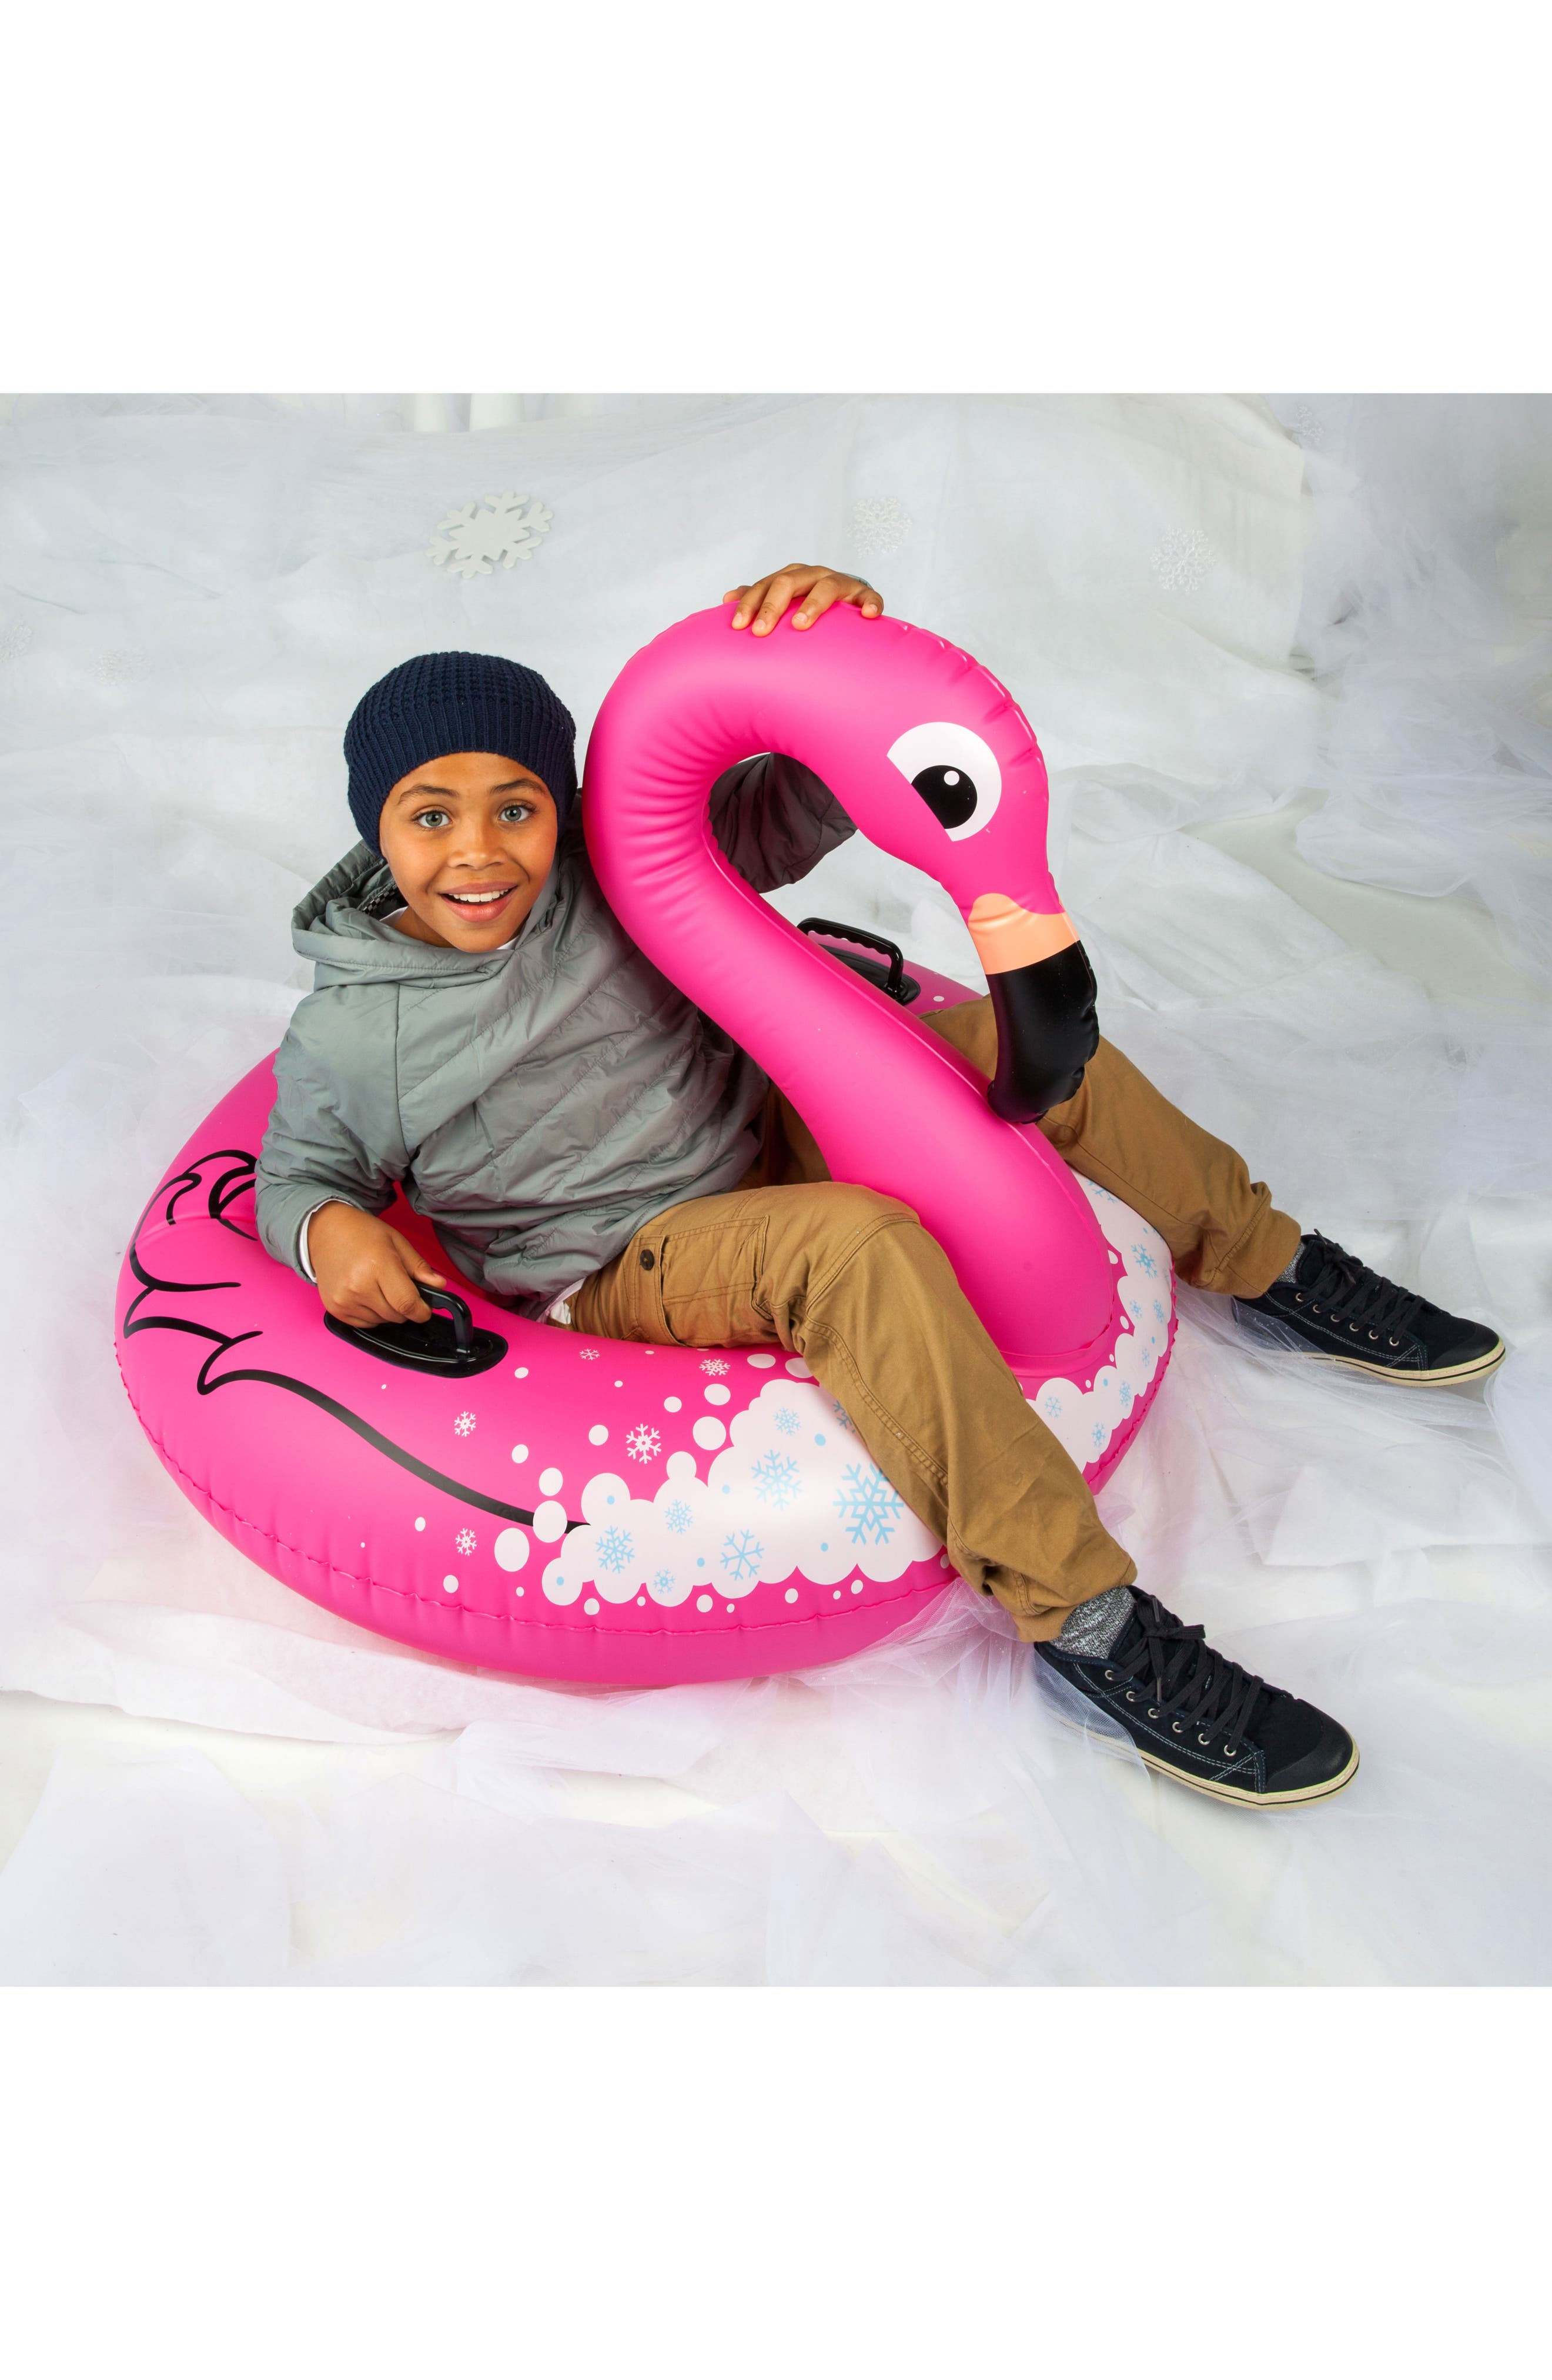 Winter Flamingo Inflatable Snow Tube,                             Alternate thumbnail 3, color,                             670